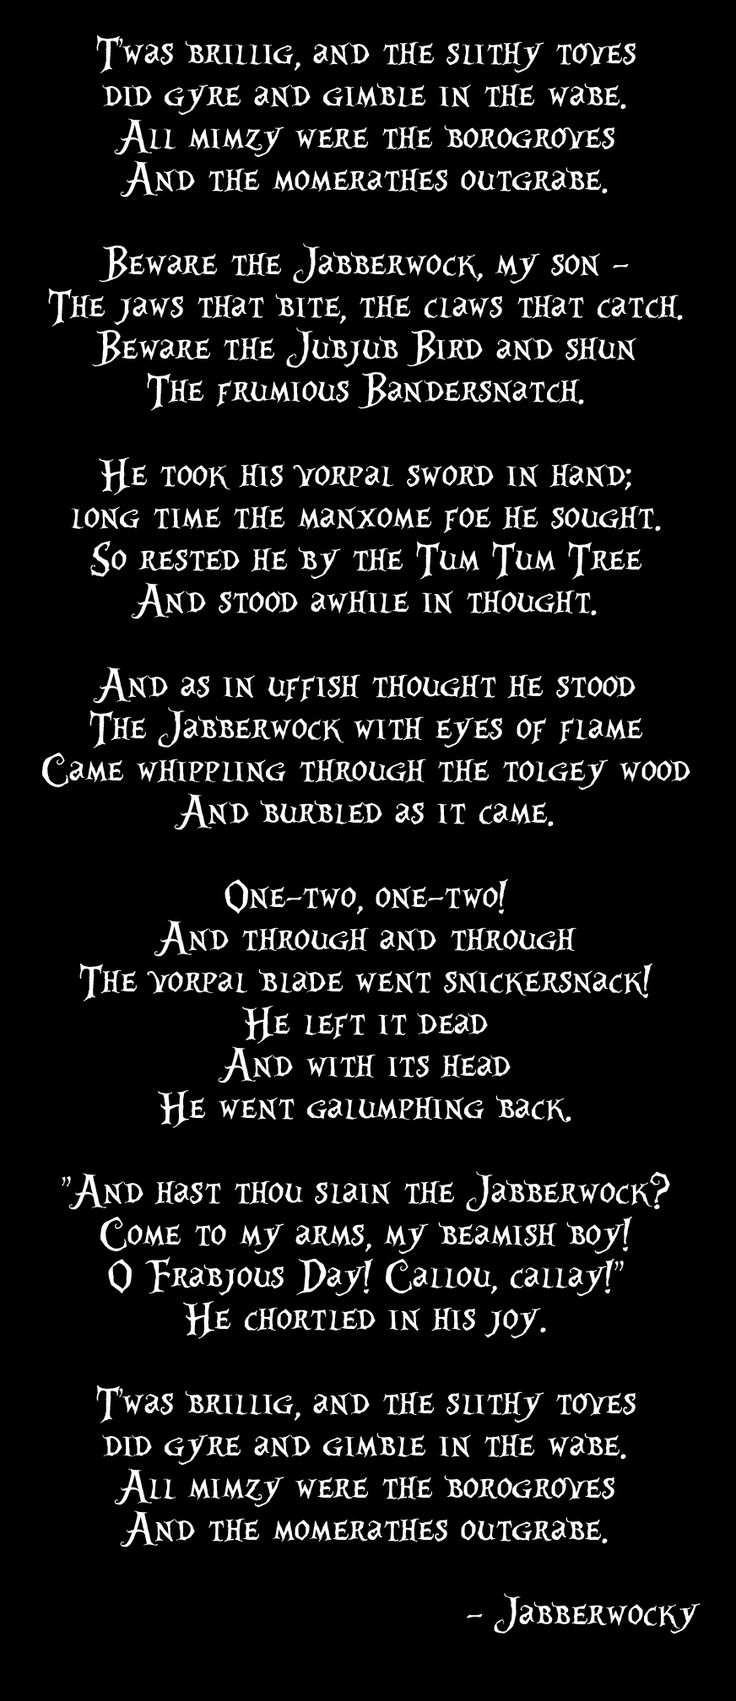 the full poem (which inspired part of the Tim Burton plot) in the font used on the cover of Alice in Wonderland 2010